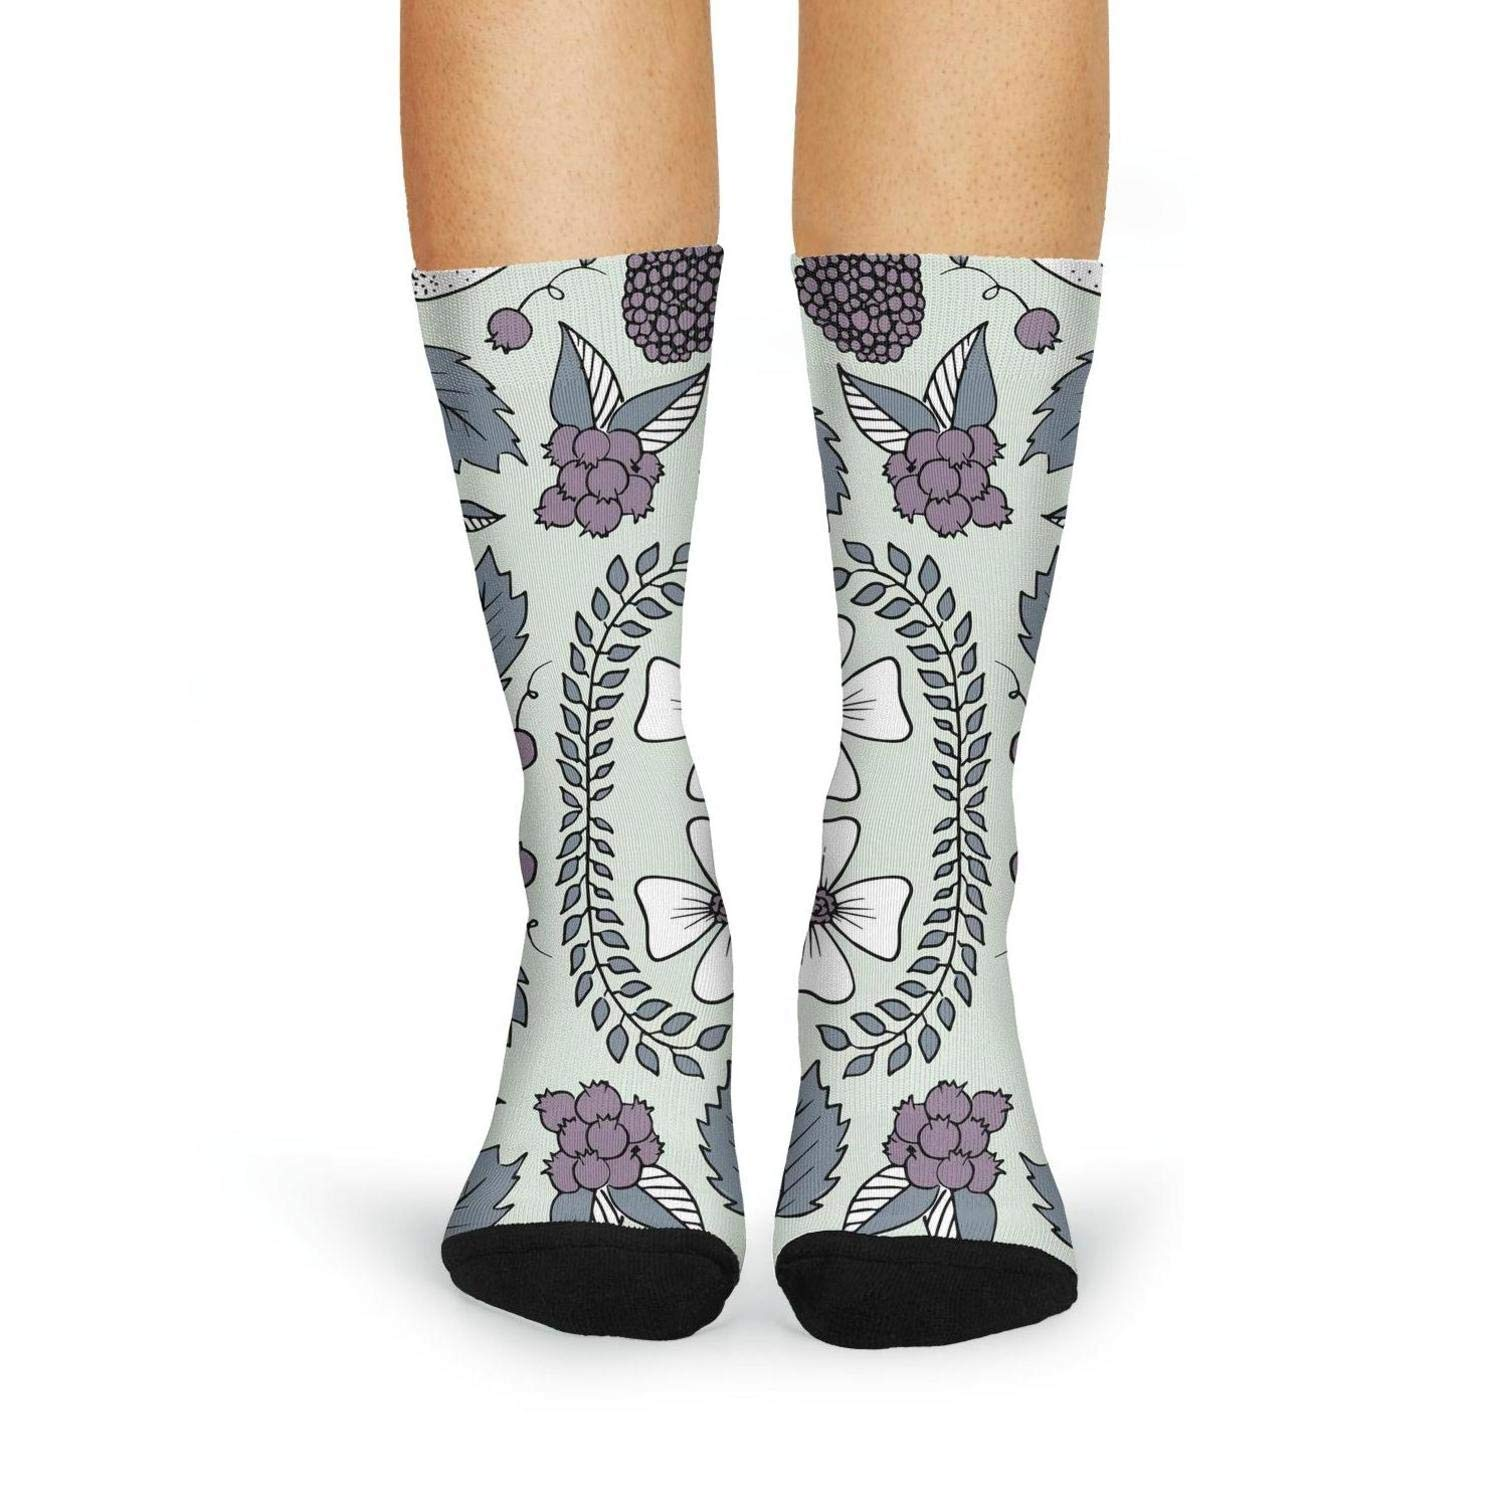 XIdan-die Womens Over-the-Calf Tube Socks Floral And Berry Pattern Moisture Wicking Casual Socks